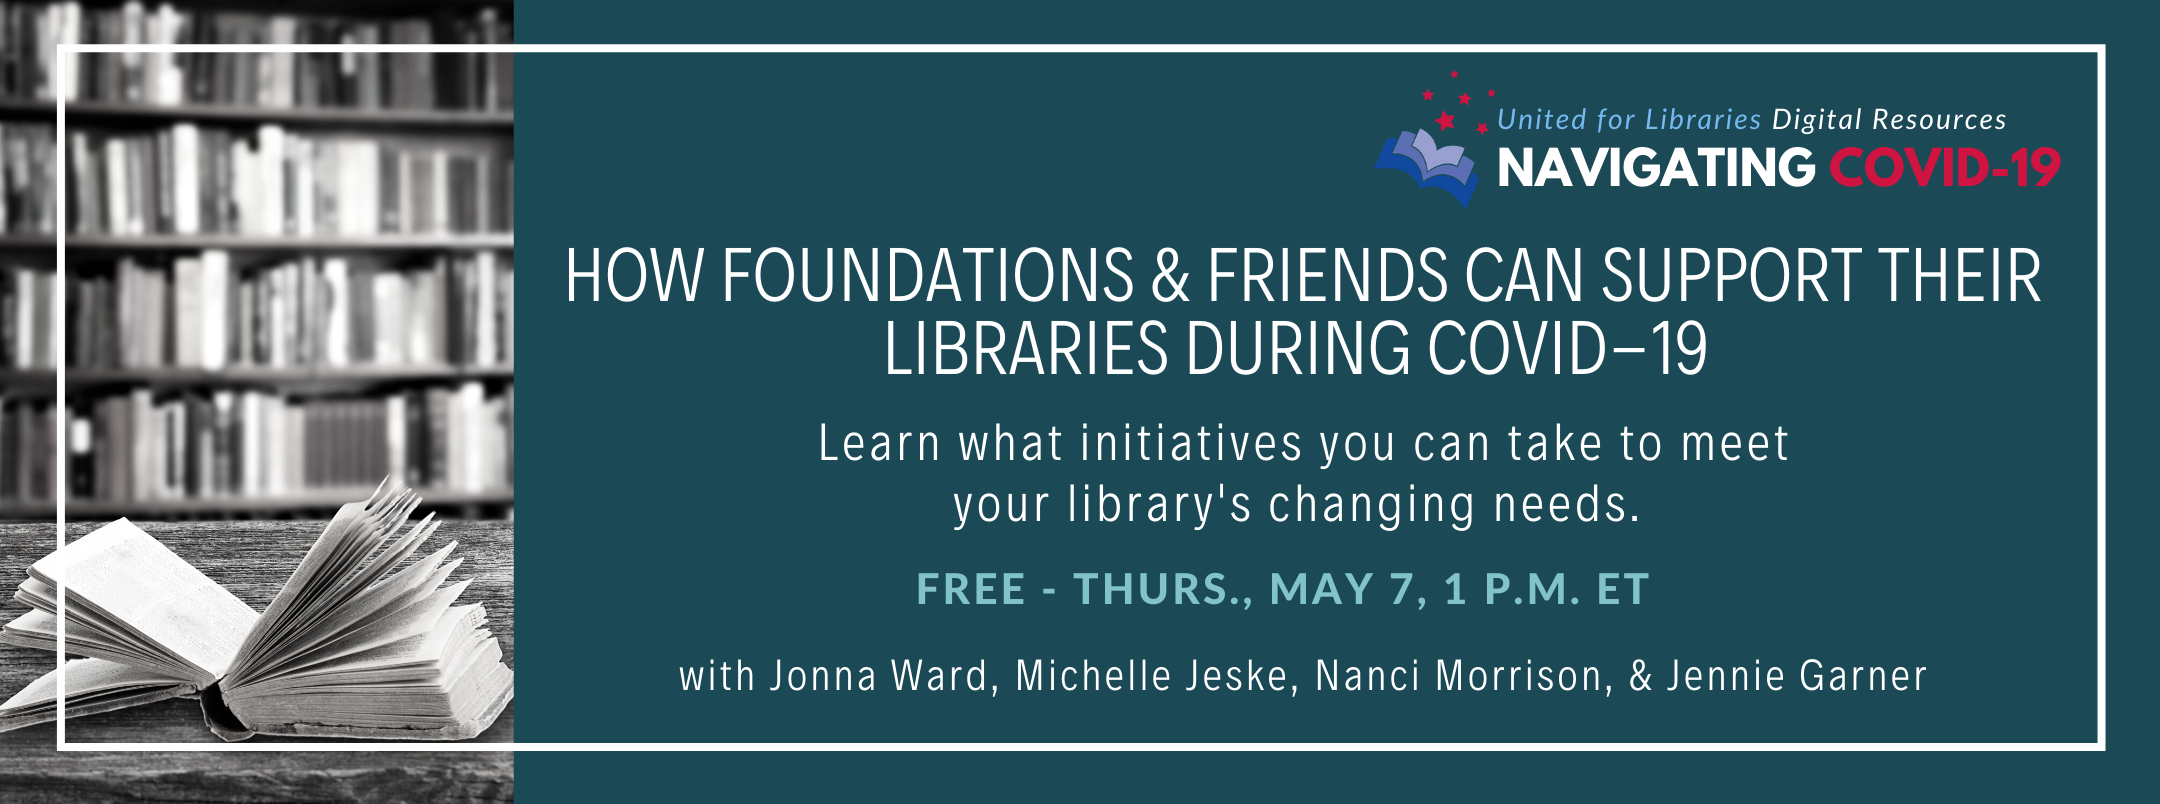 How Foundations and Friends Can Support Their Libraries During COVID-19